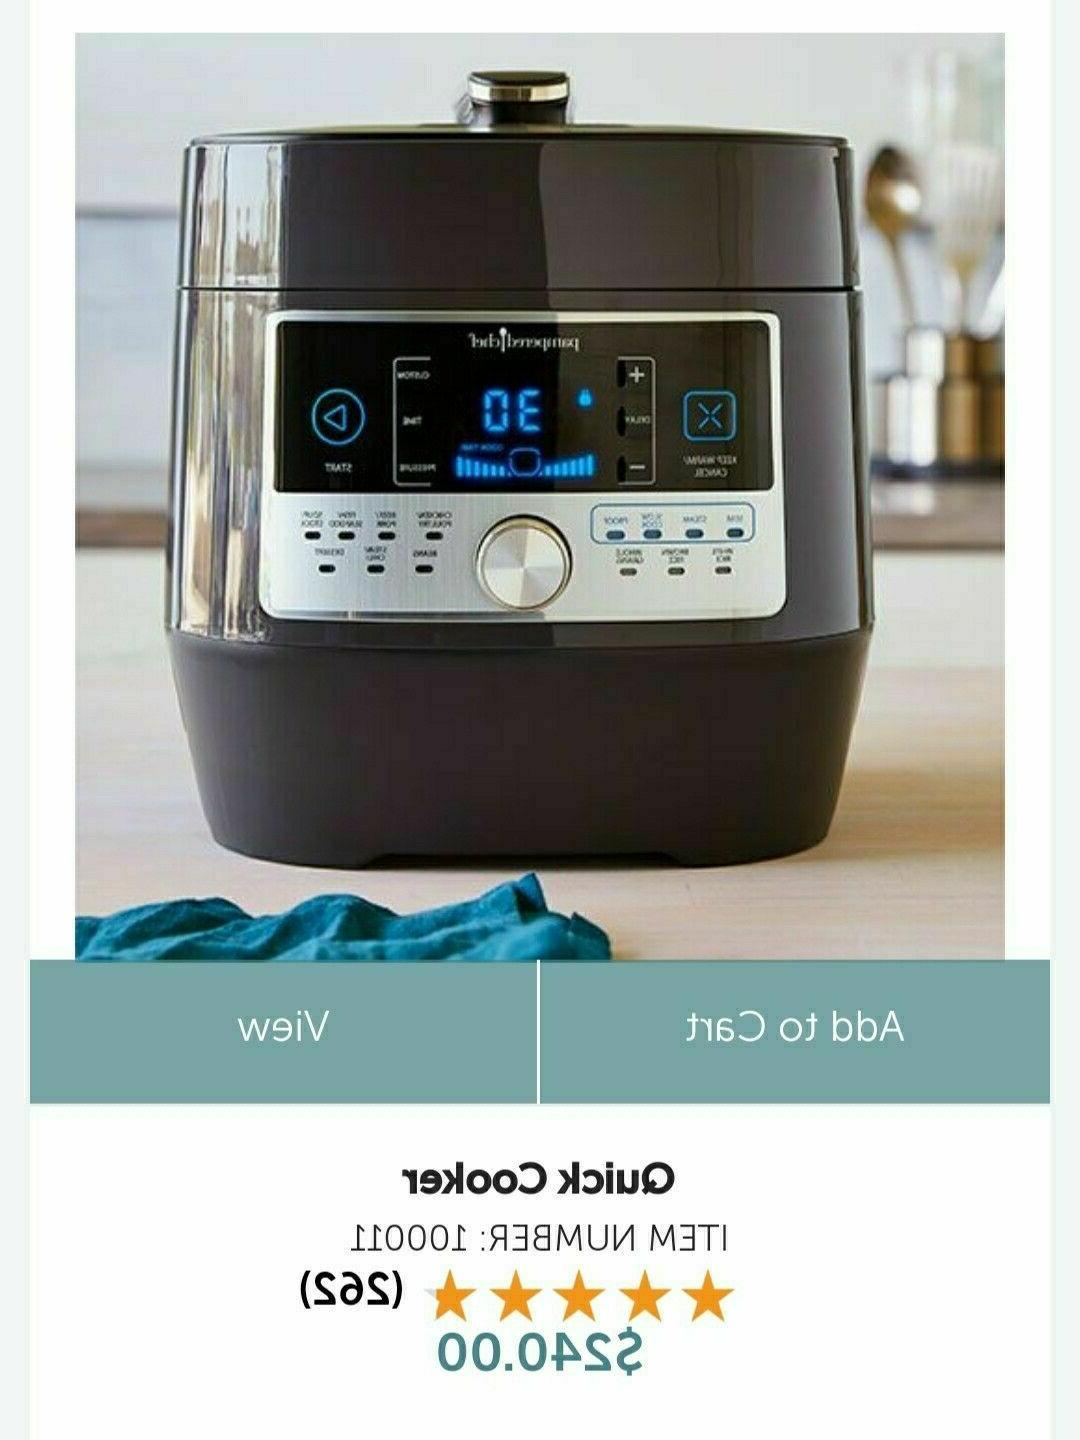 Pampered Quick Cooker BRAND In 16 FREE SHIP